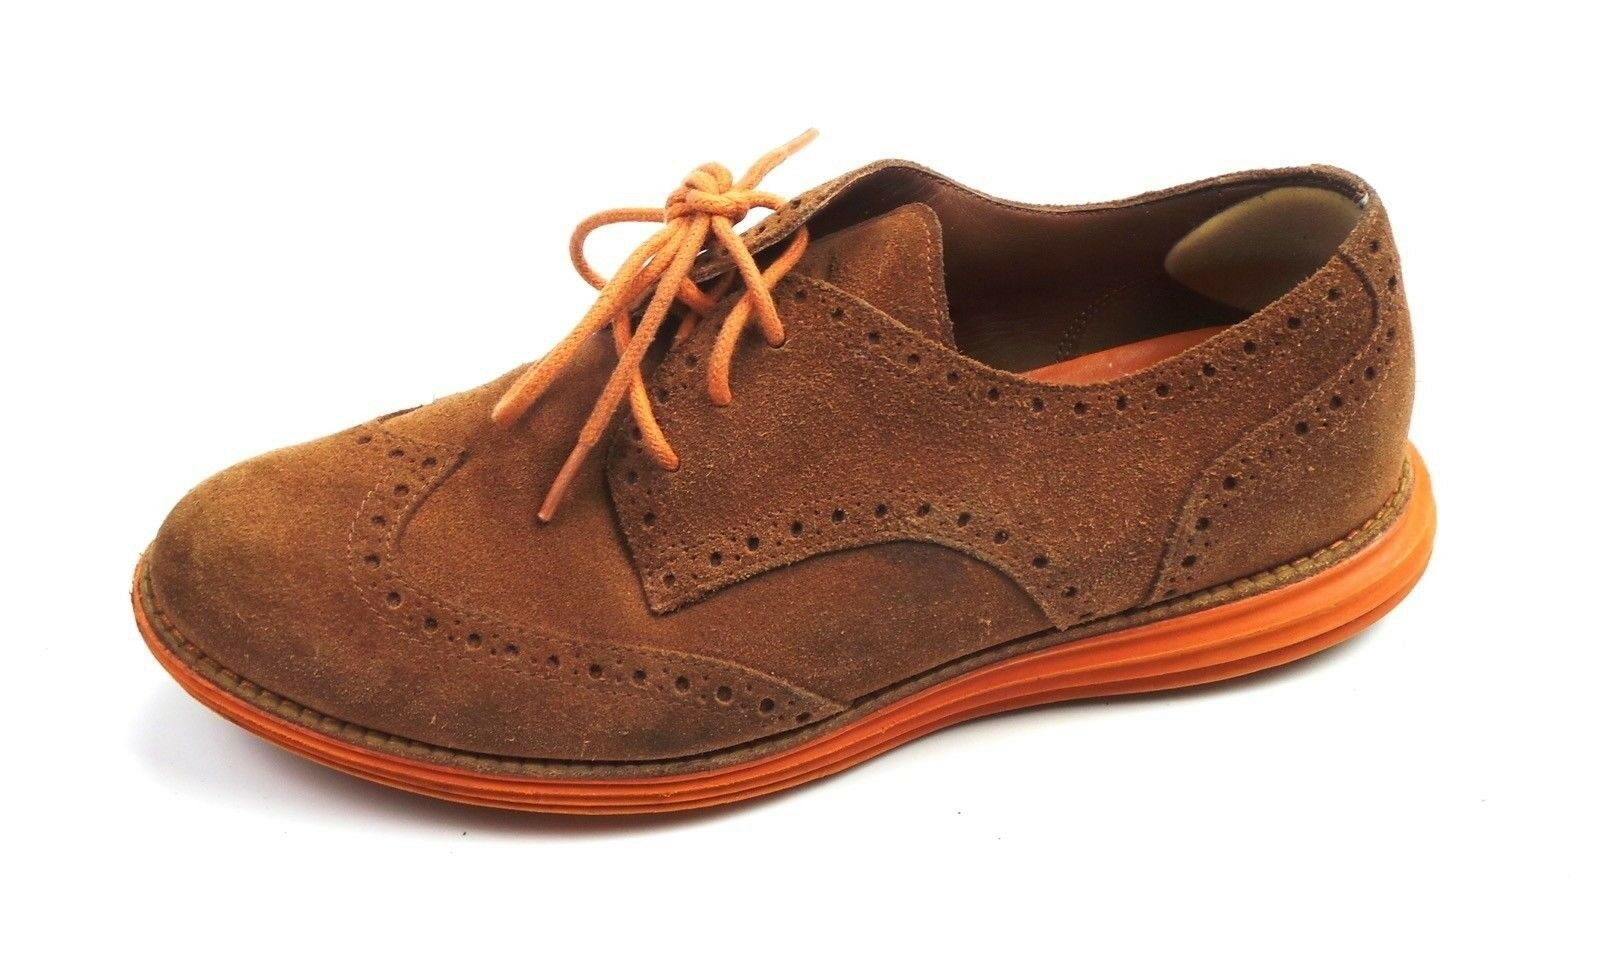 Cole  Haan donna LungGrand Oxfords GS scarpe Marronee Suede Dimensione 6.5  comodamente